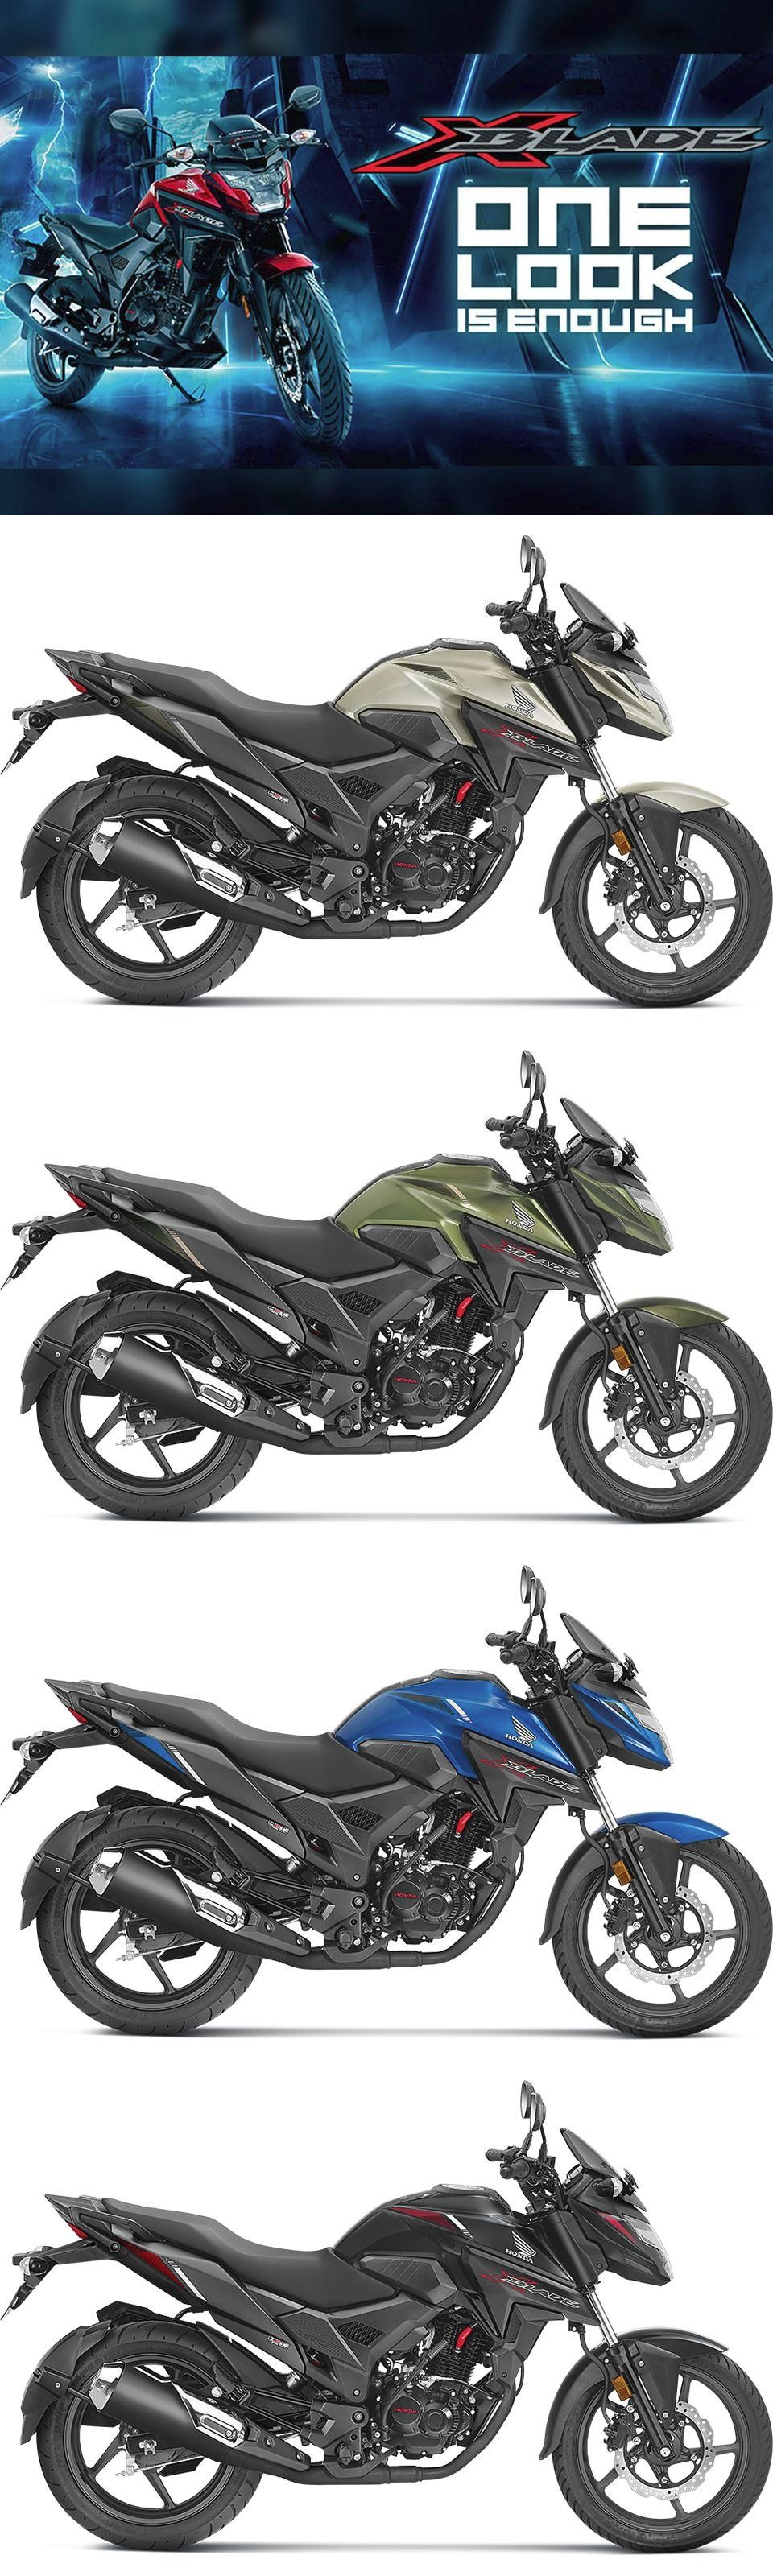 Honda Xblade 160 Officially Launched In India Honda Bike Blade